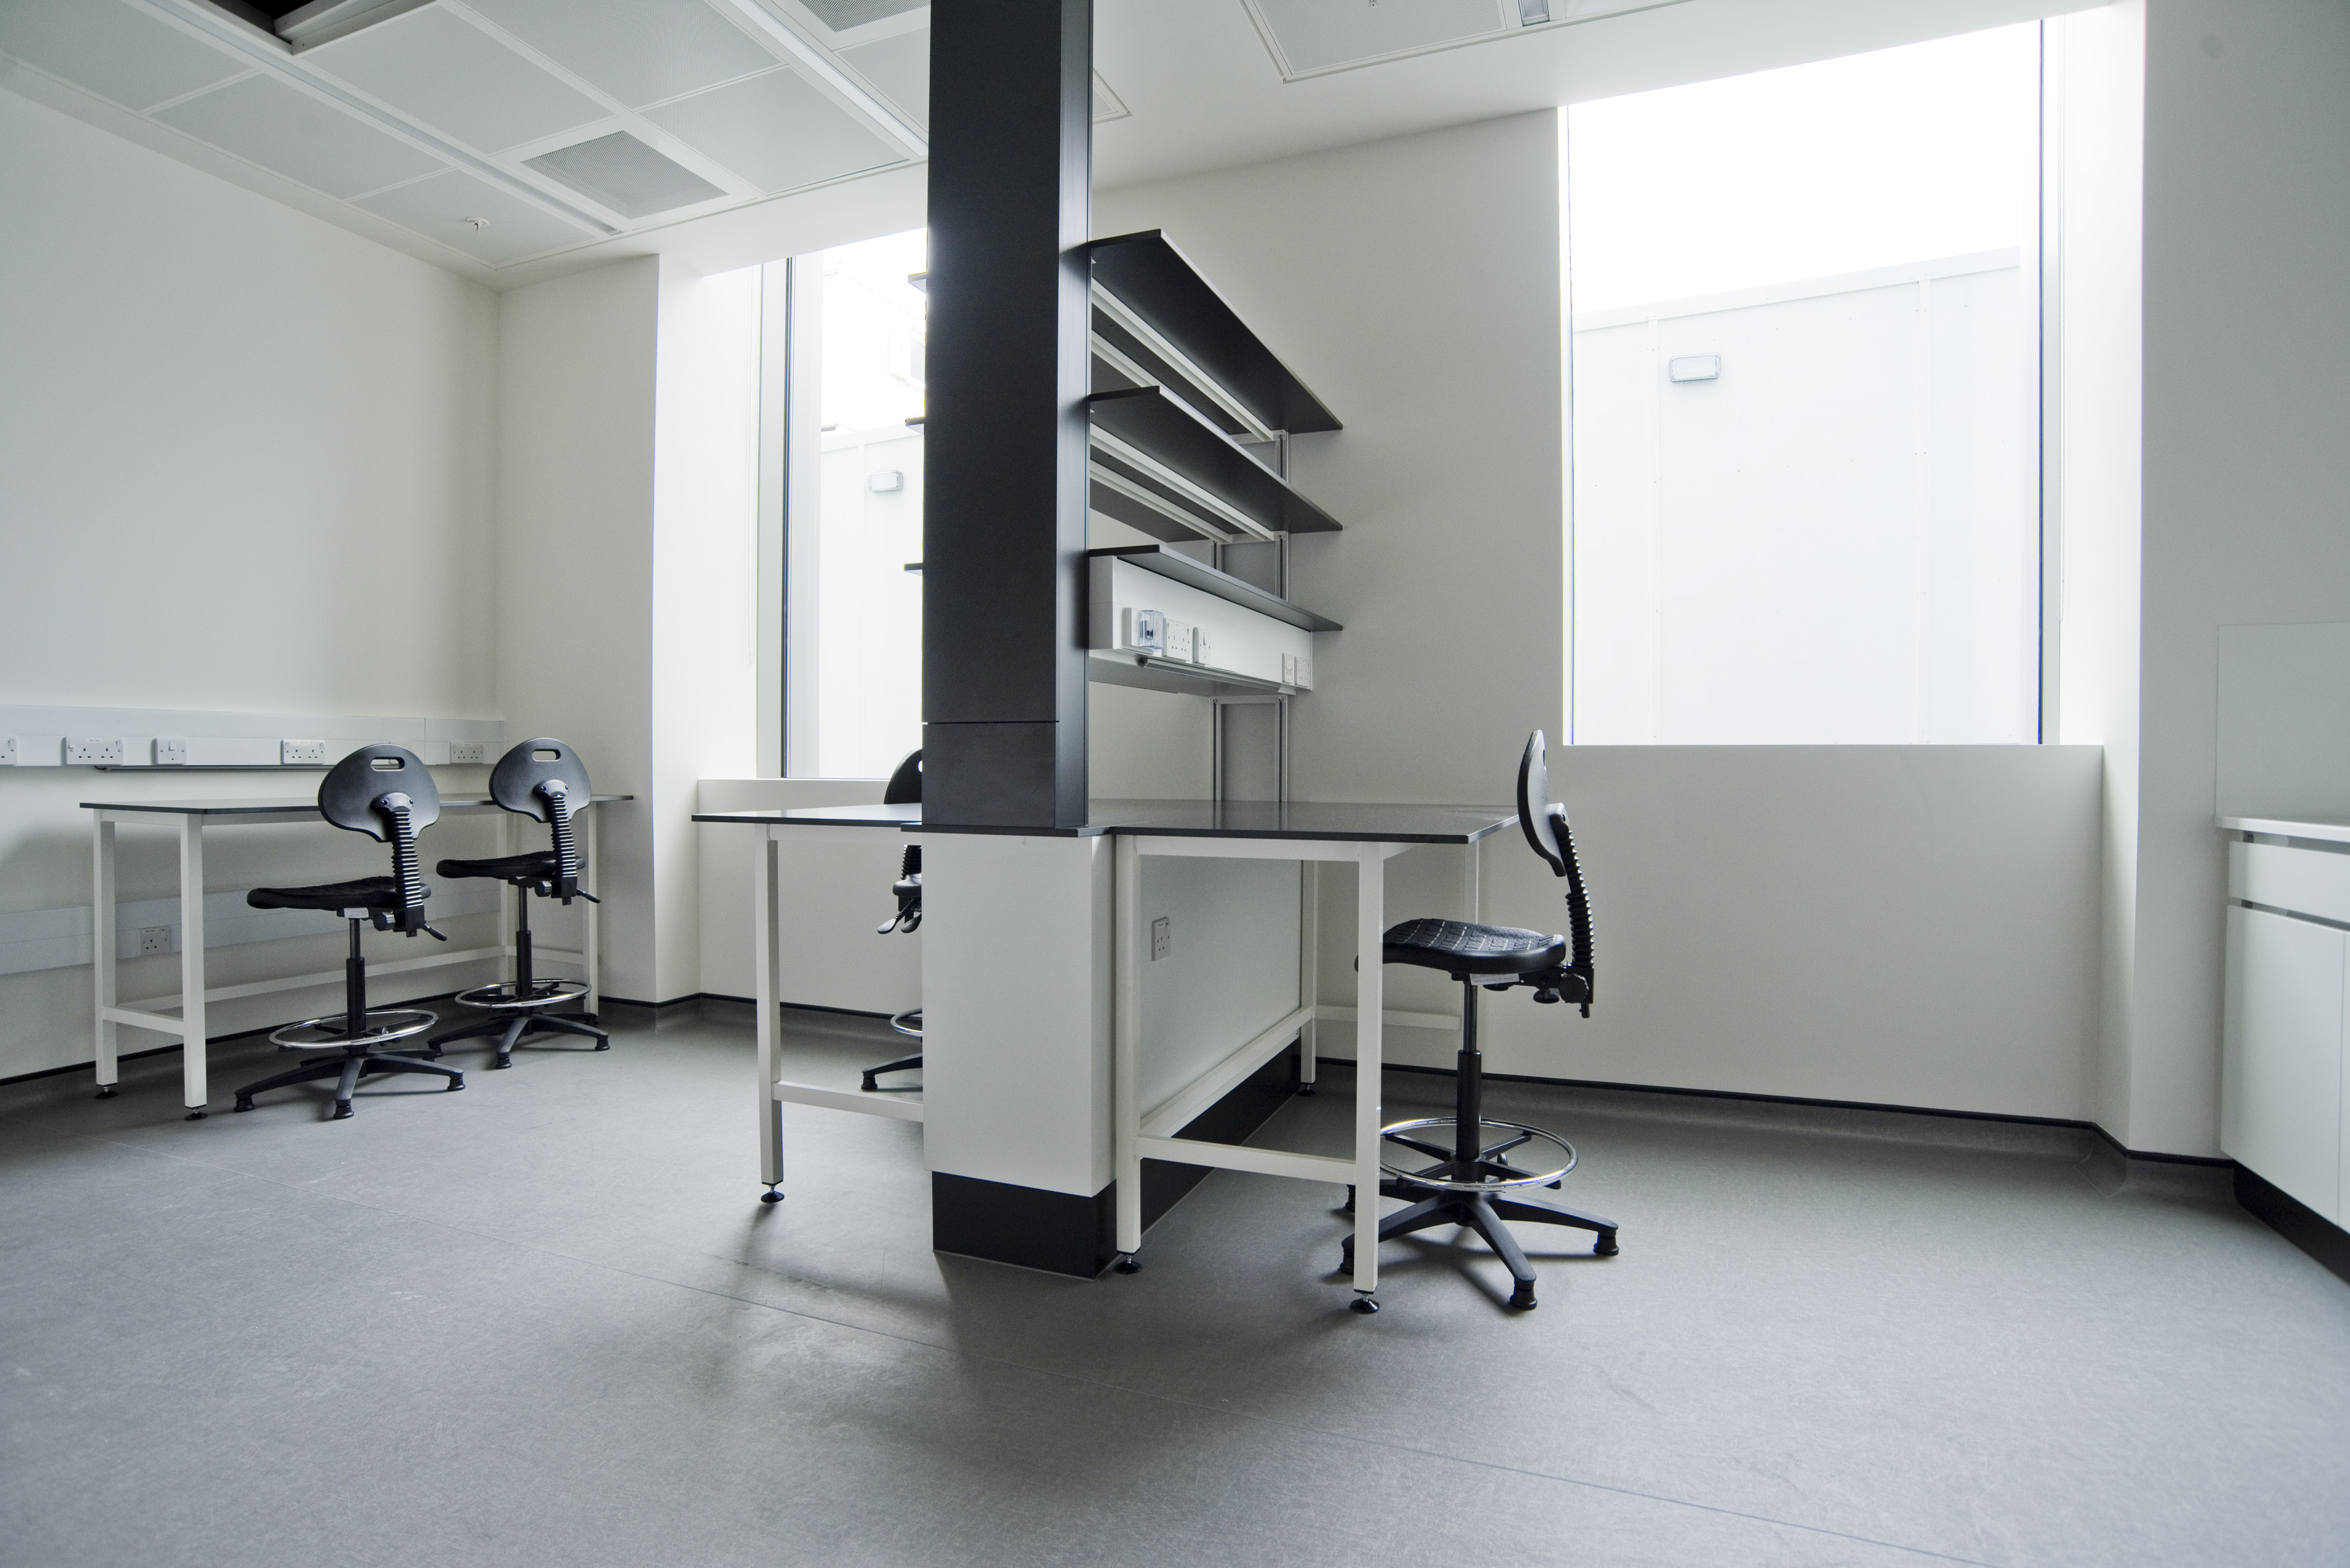 This image shows one of the larger proprietary labs in the Bioescalator. The room has 2 large windows on the back wall. There are 2 desks with chairs in the middle of the room. There is shelving above those desks. There is also another desk with chairs to the left of the room. There is a bench top to the right of the room.